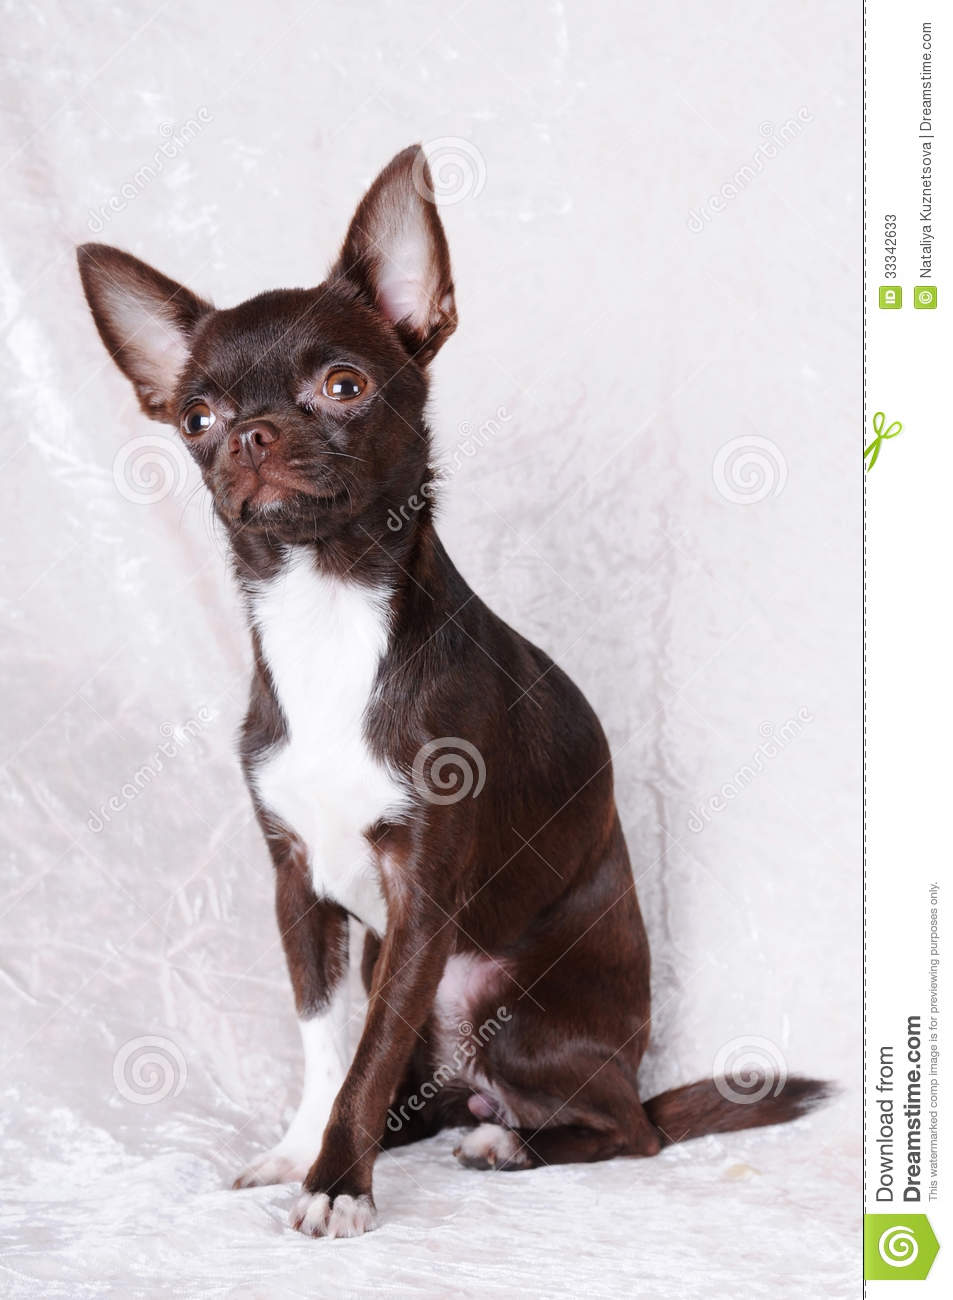 brown and white chihuahua brown and white chihuahua portrait stock image image of 8789